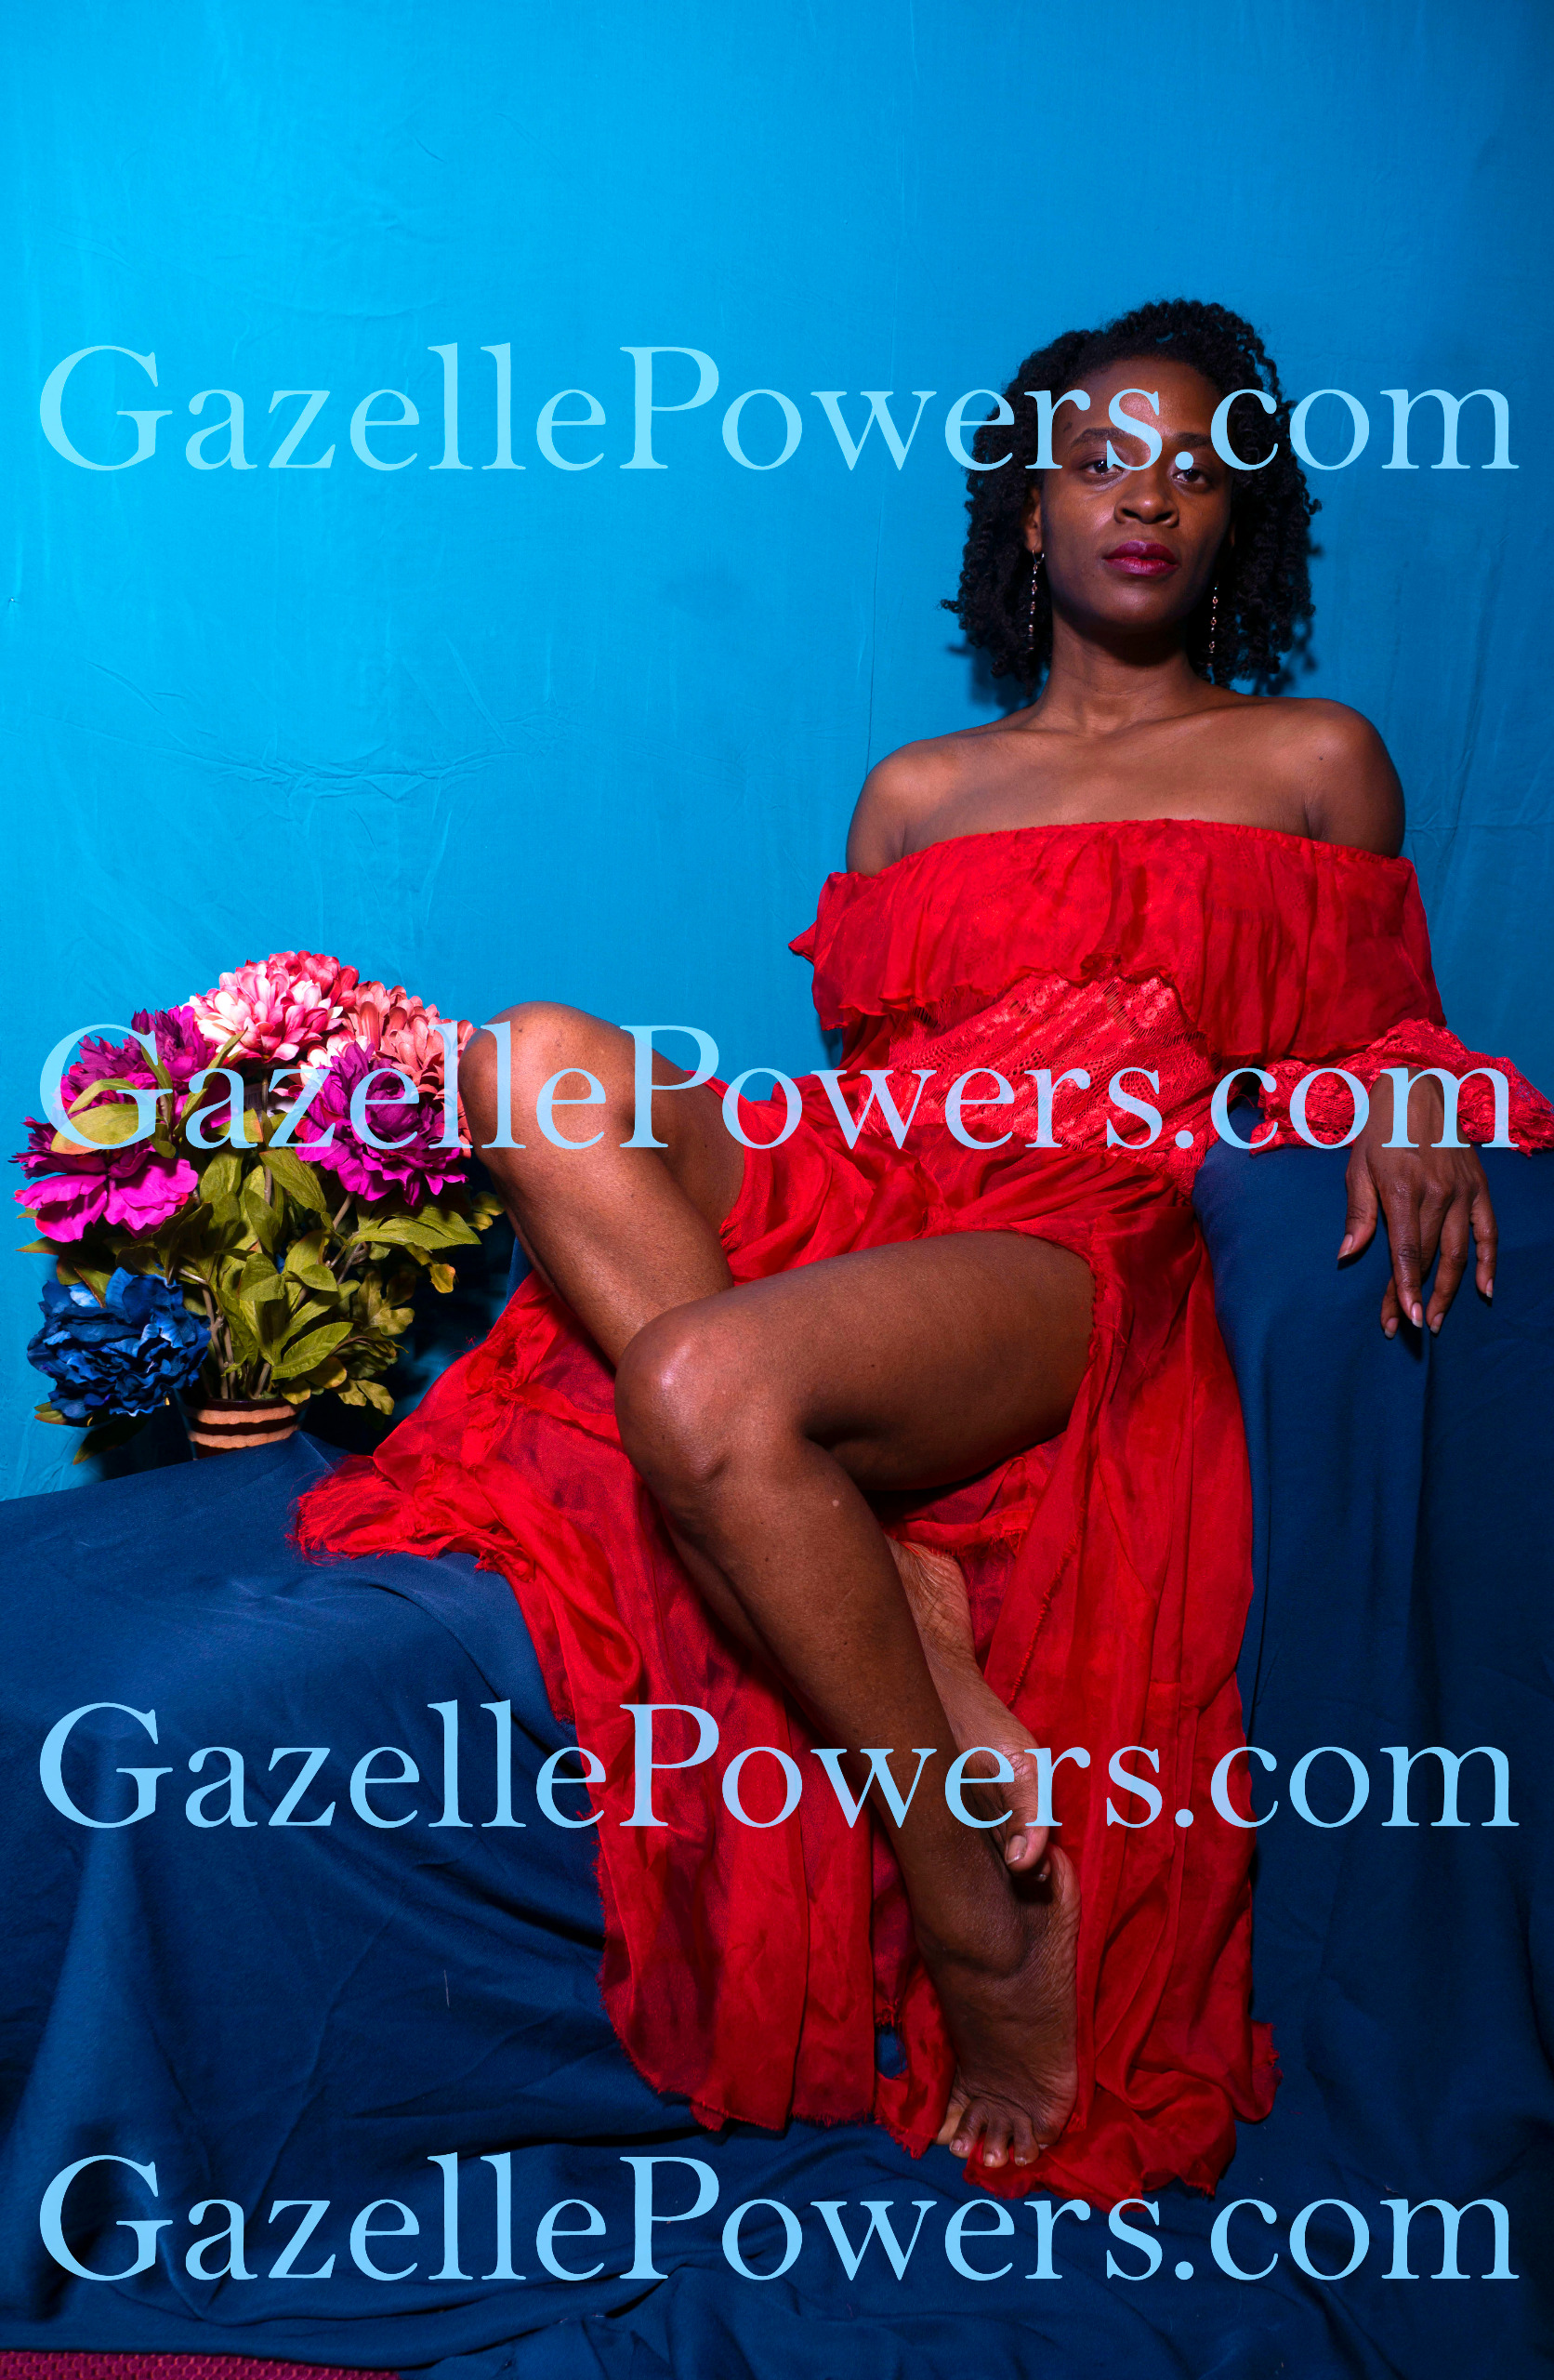 July 12th Session - Lady in Red #6